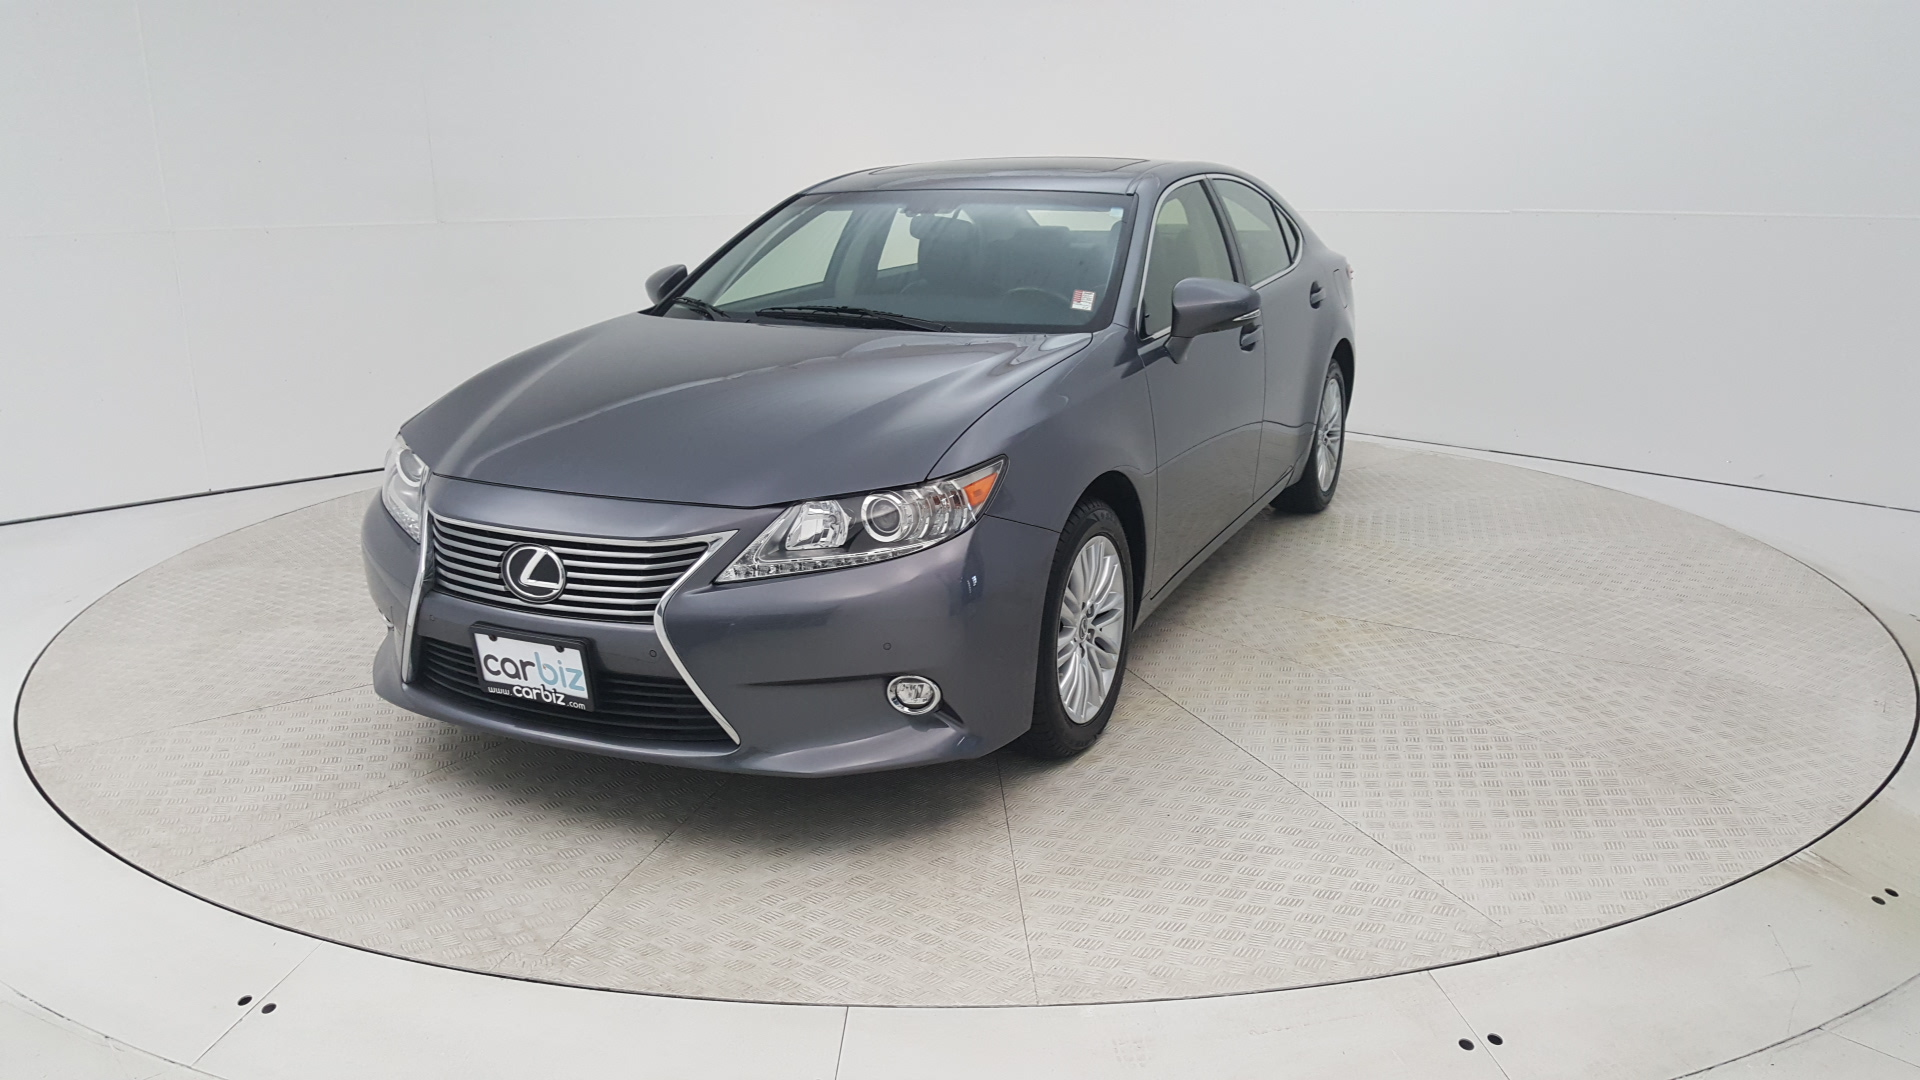 Pre Owned 2015 Lexus ES 350 4dr Sdn 4dr Car in Baltimore A6689